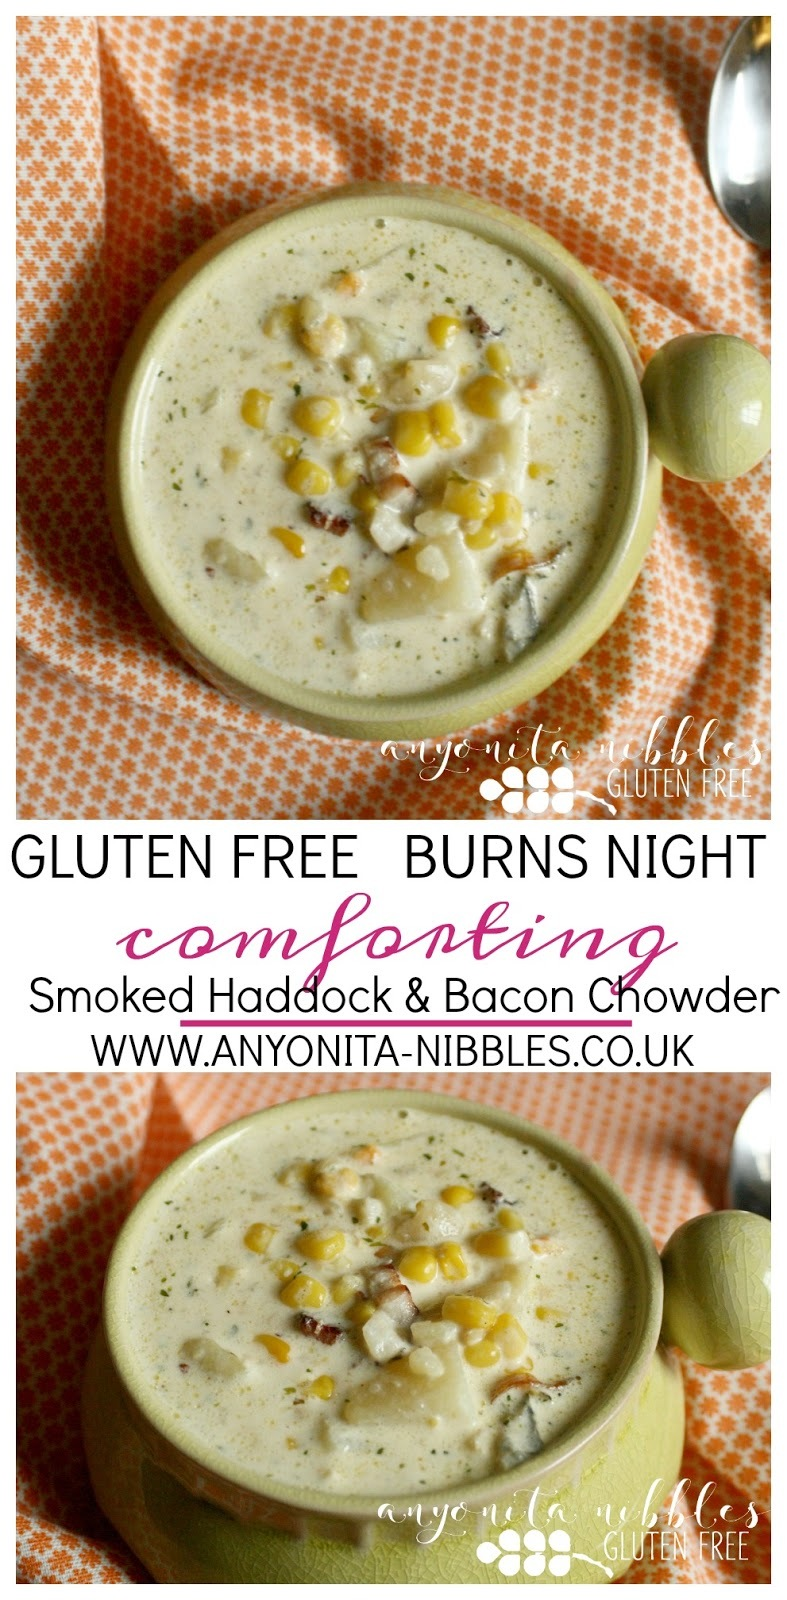 Gluten Free Smoked Haddock and Bacon Chowder - Burns Night